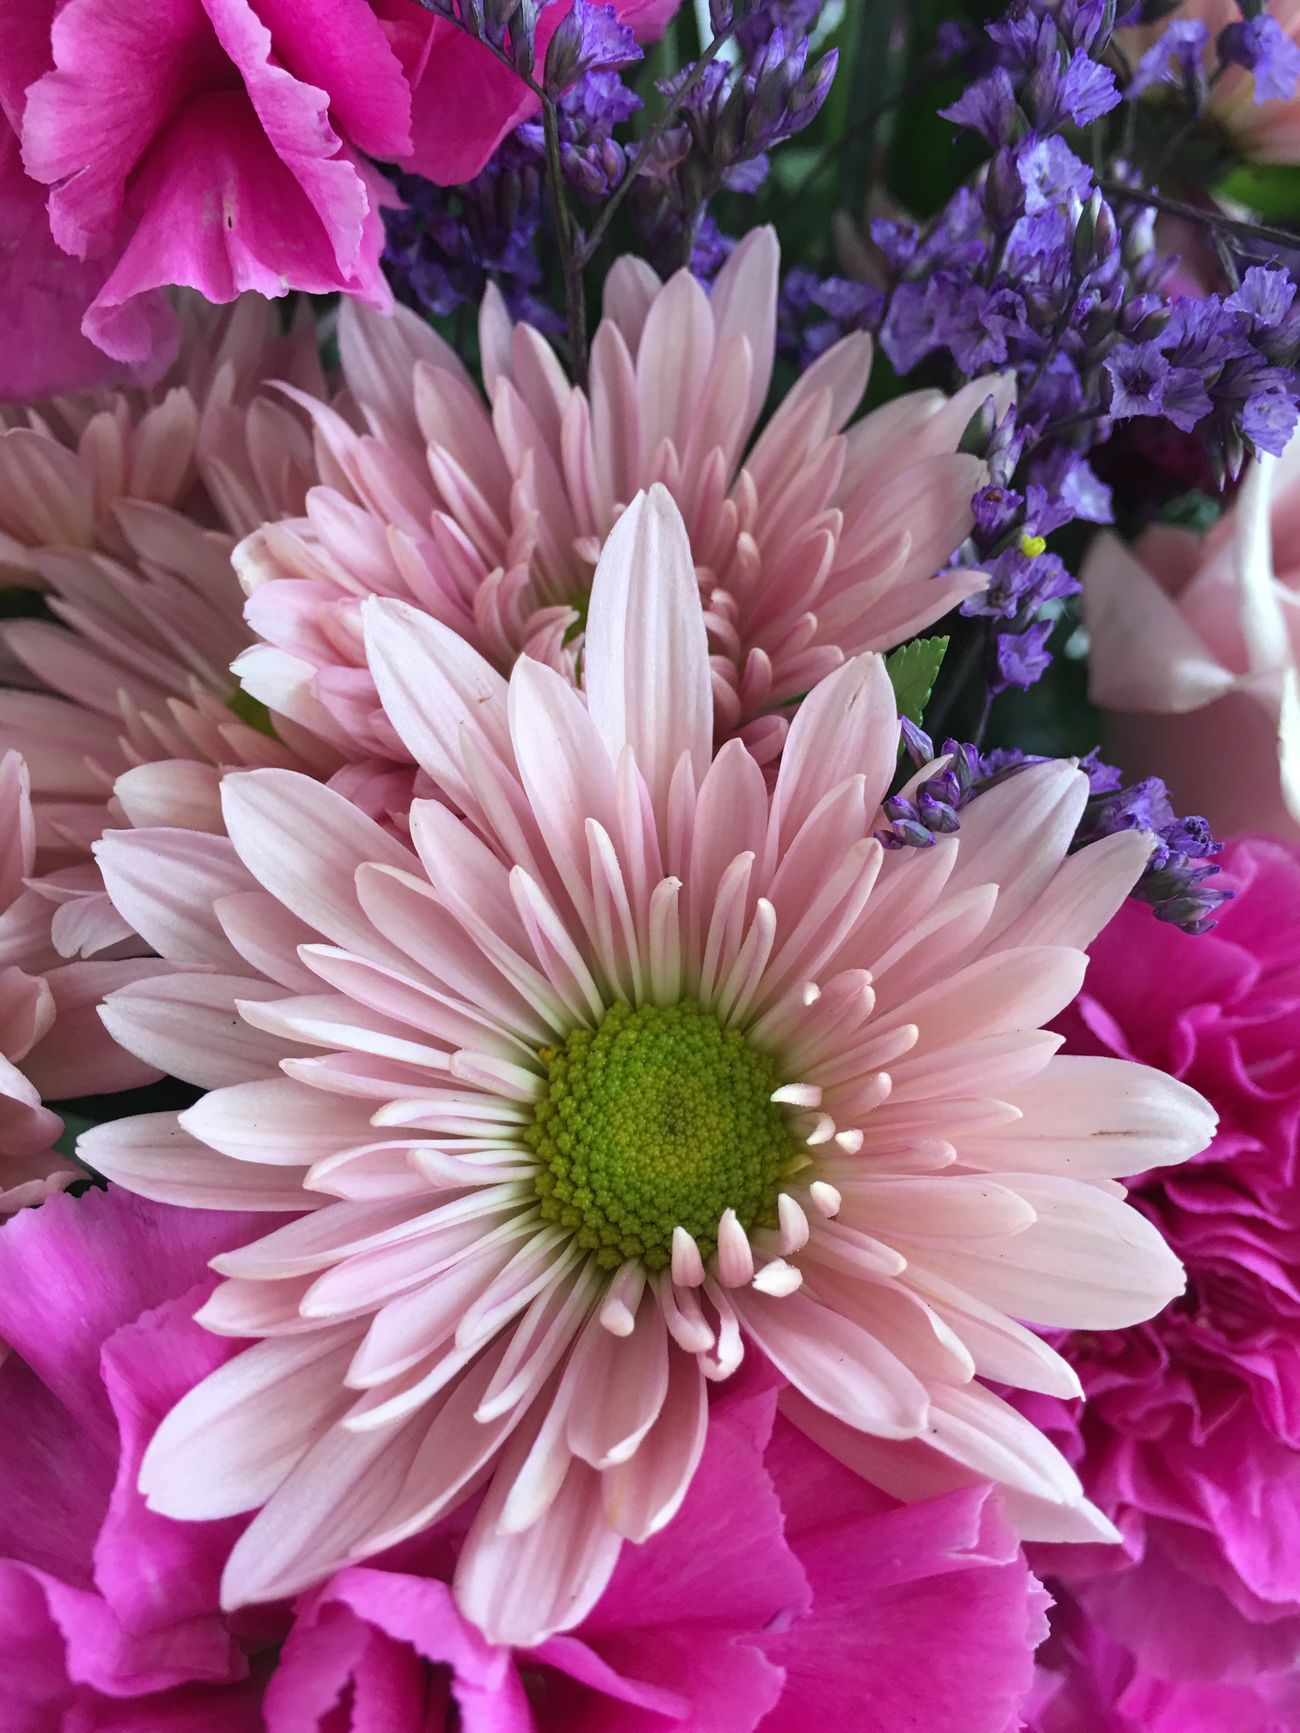 Flower Petal Fragility Beauty In Nature Freshness Flower Head Nature Purple Pink Color Growth No People Day Close-up Outdoors Blooming Pink Daisy